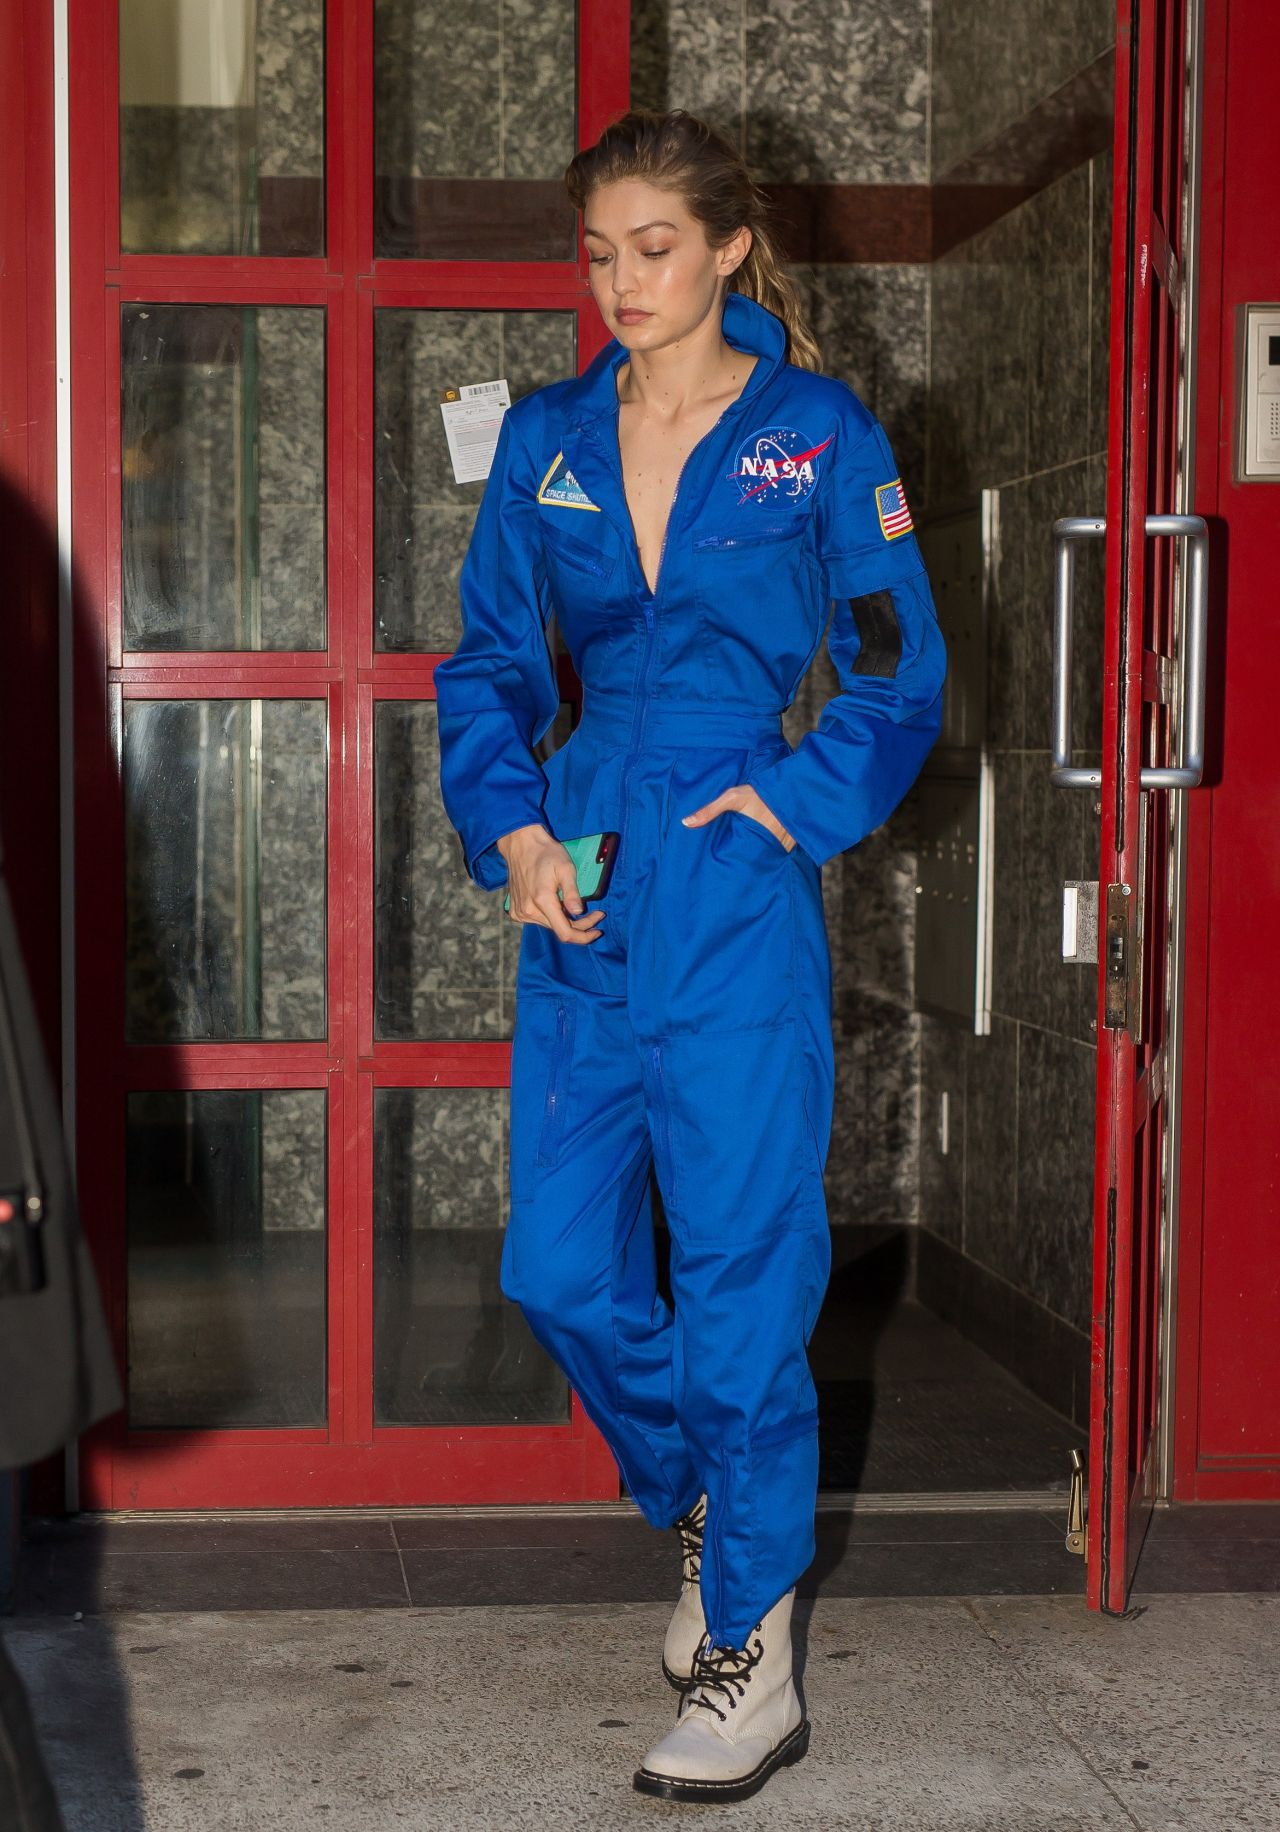 nasa jumpsuit blue - photo #19